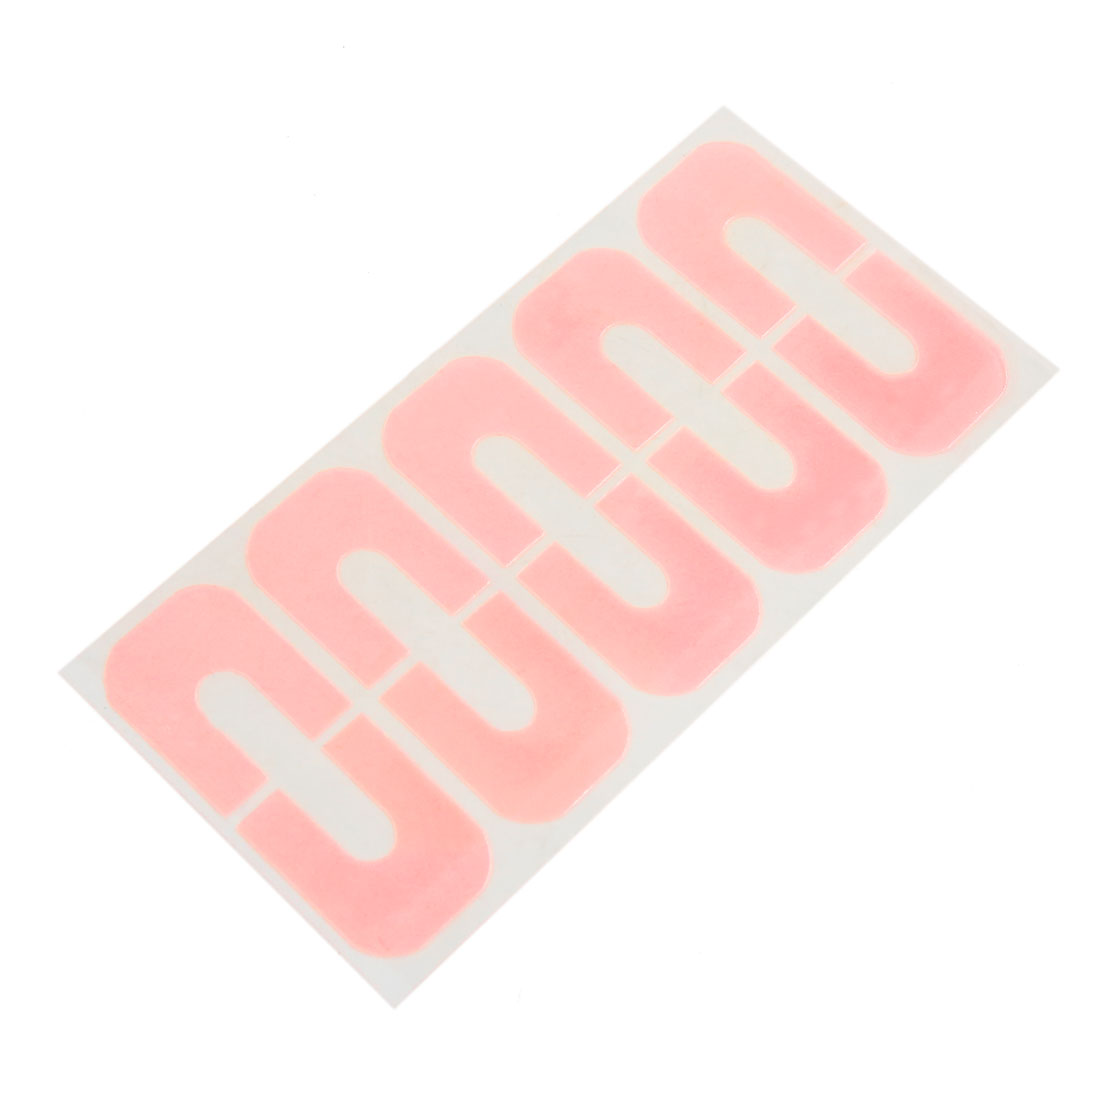 10pcs Pink Nail Polish Protector Spill-Resistant Stencil Stickers Manicure Tape